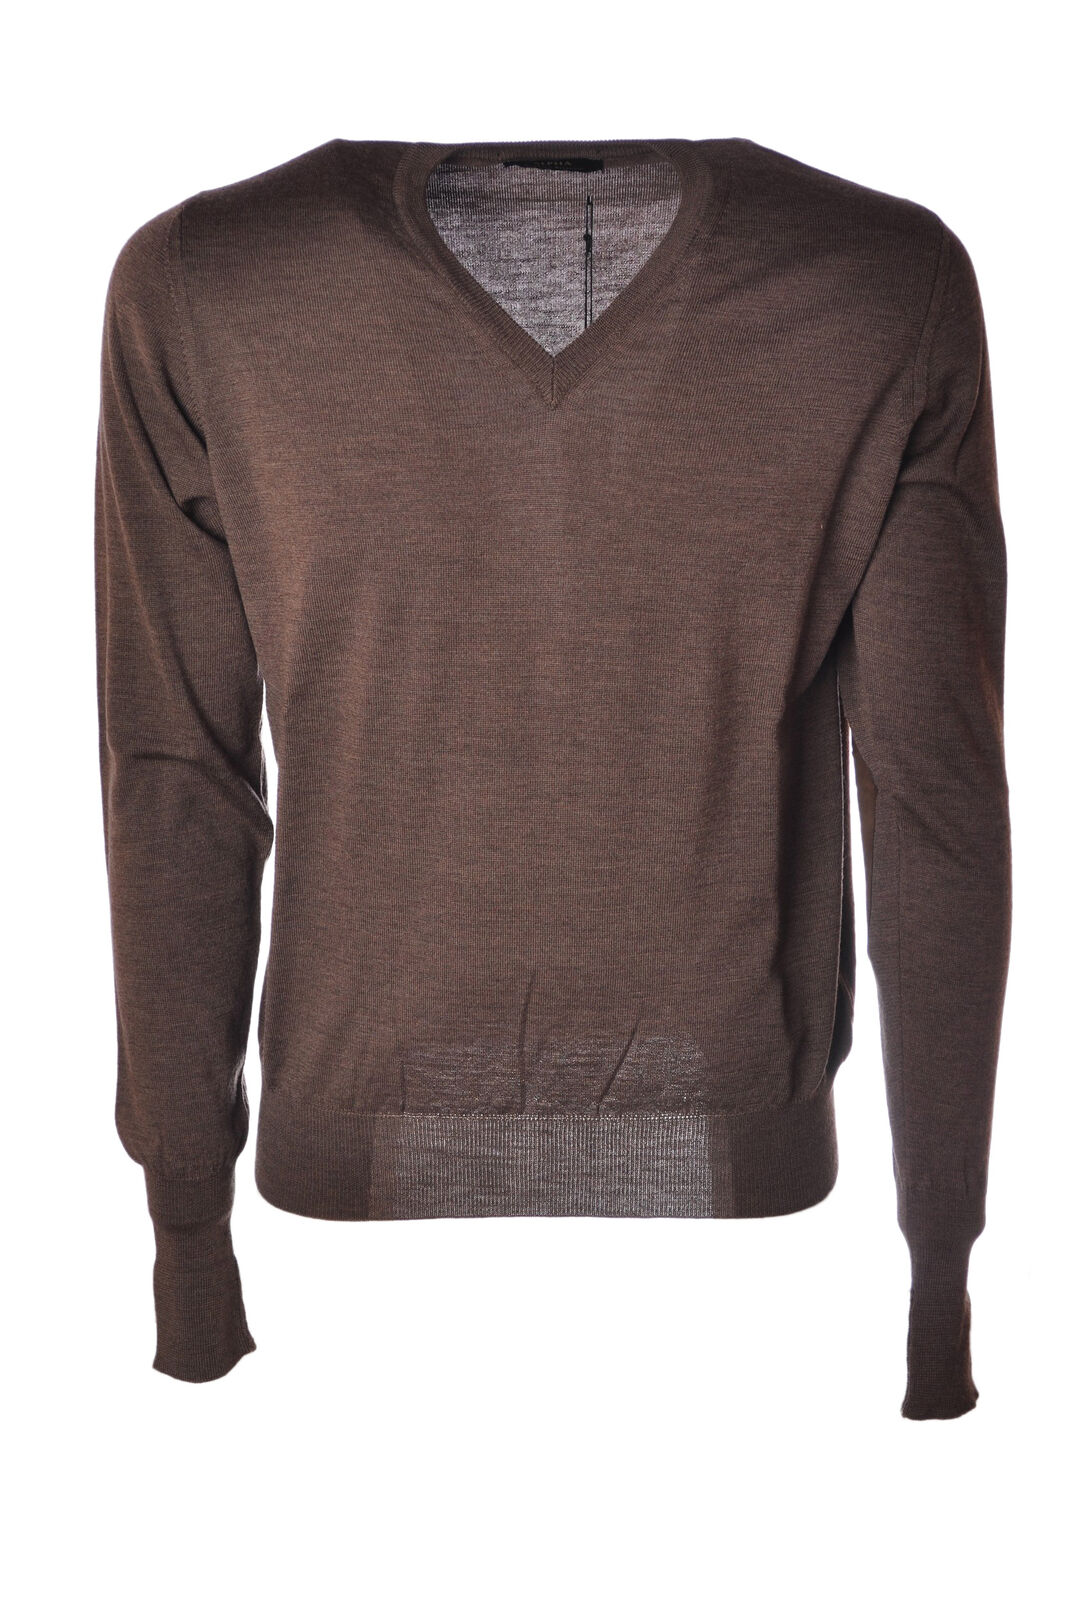 Alpha  -  Sweaters - Male - Brown - 4621222A180214